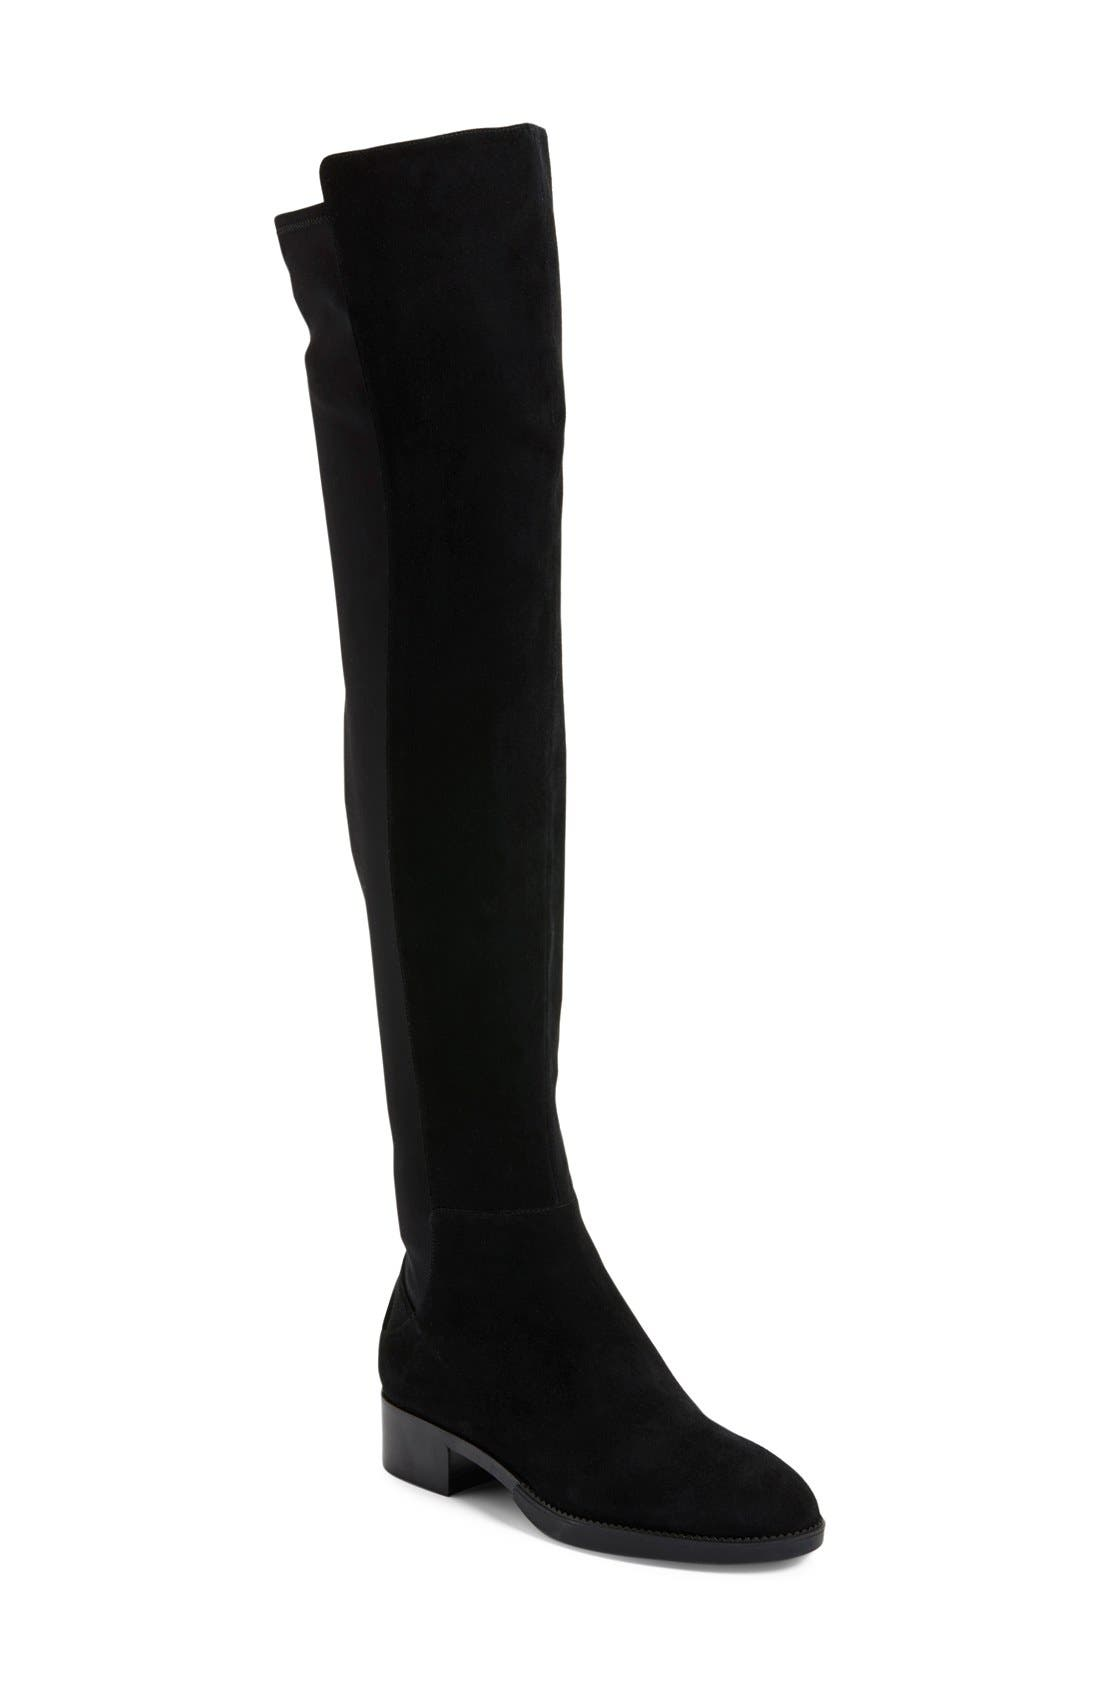 TORY BURCH,                             'Caitlin' Over the Knee Boot,                             Main thumbnail 1, color,                             001